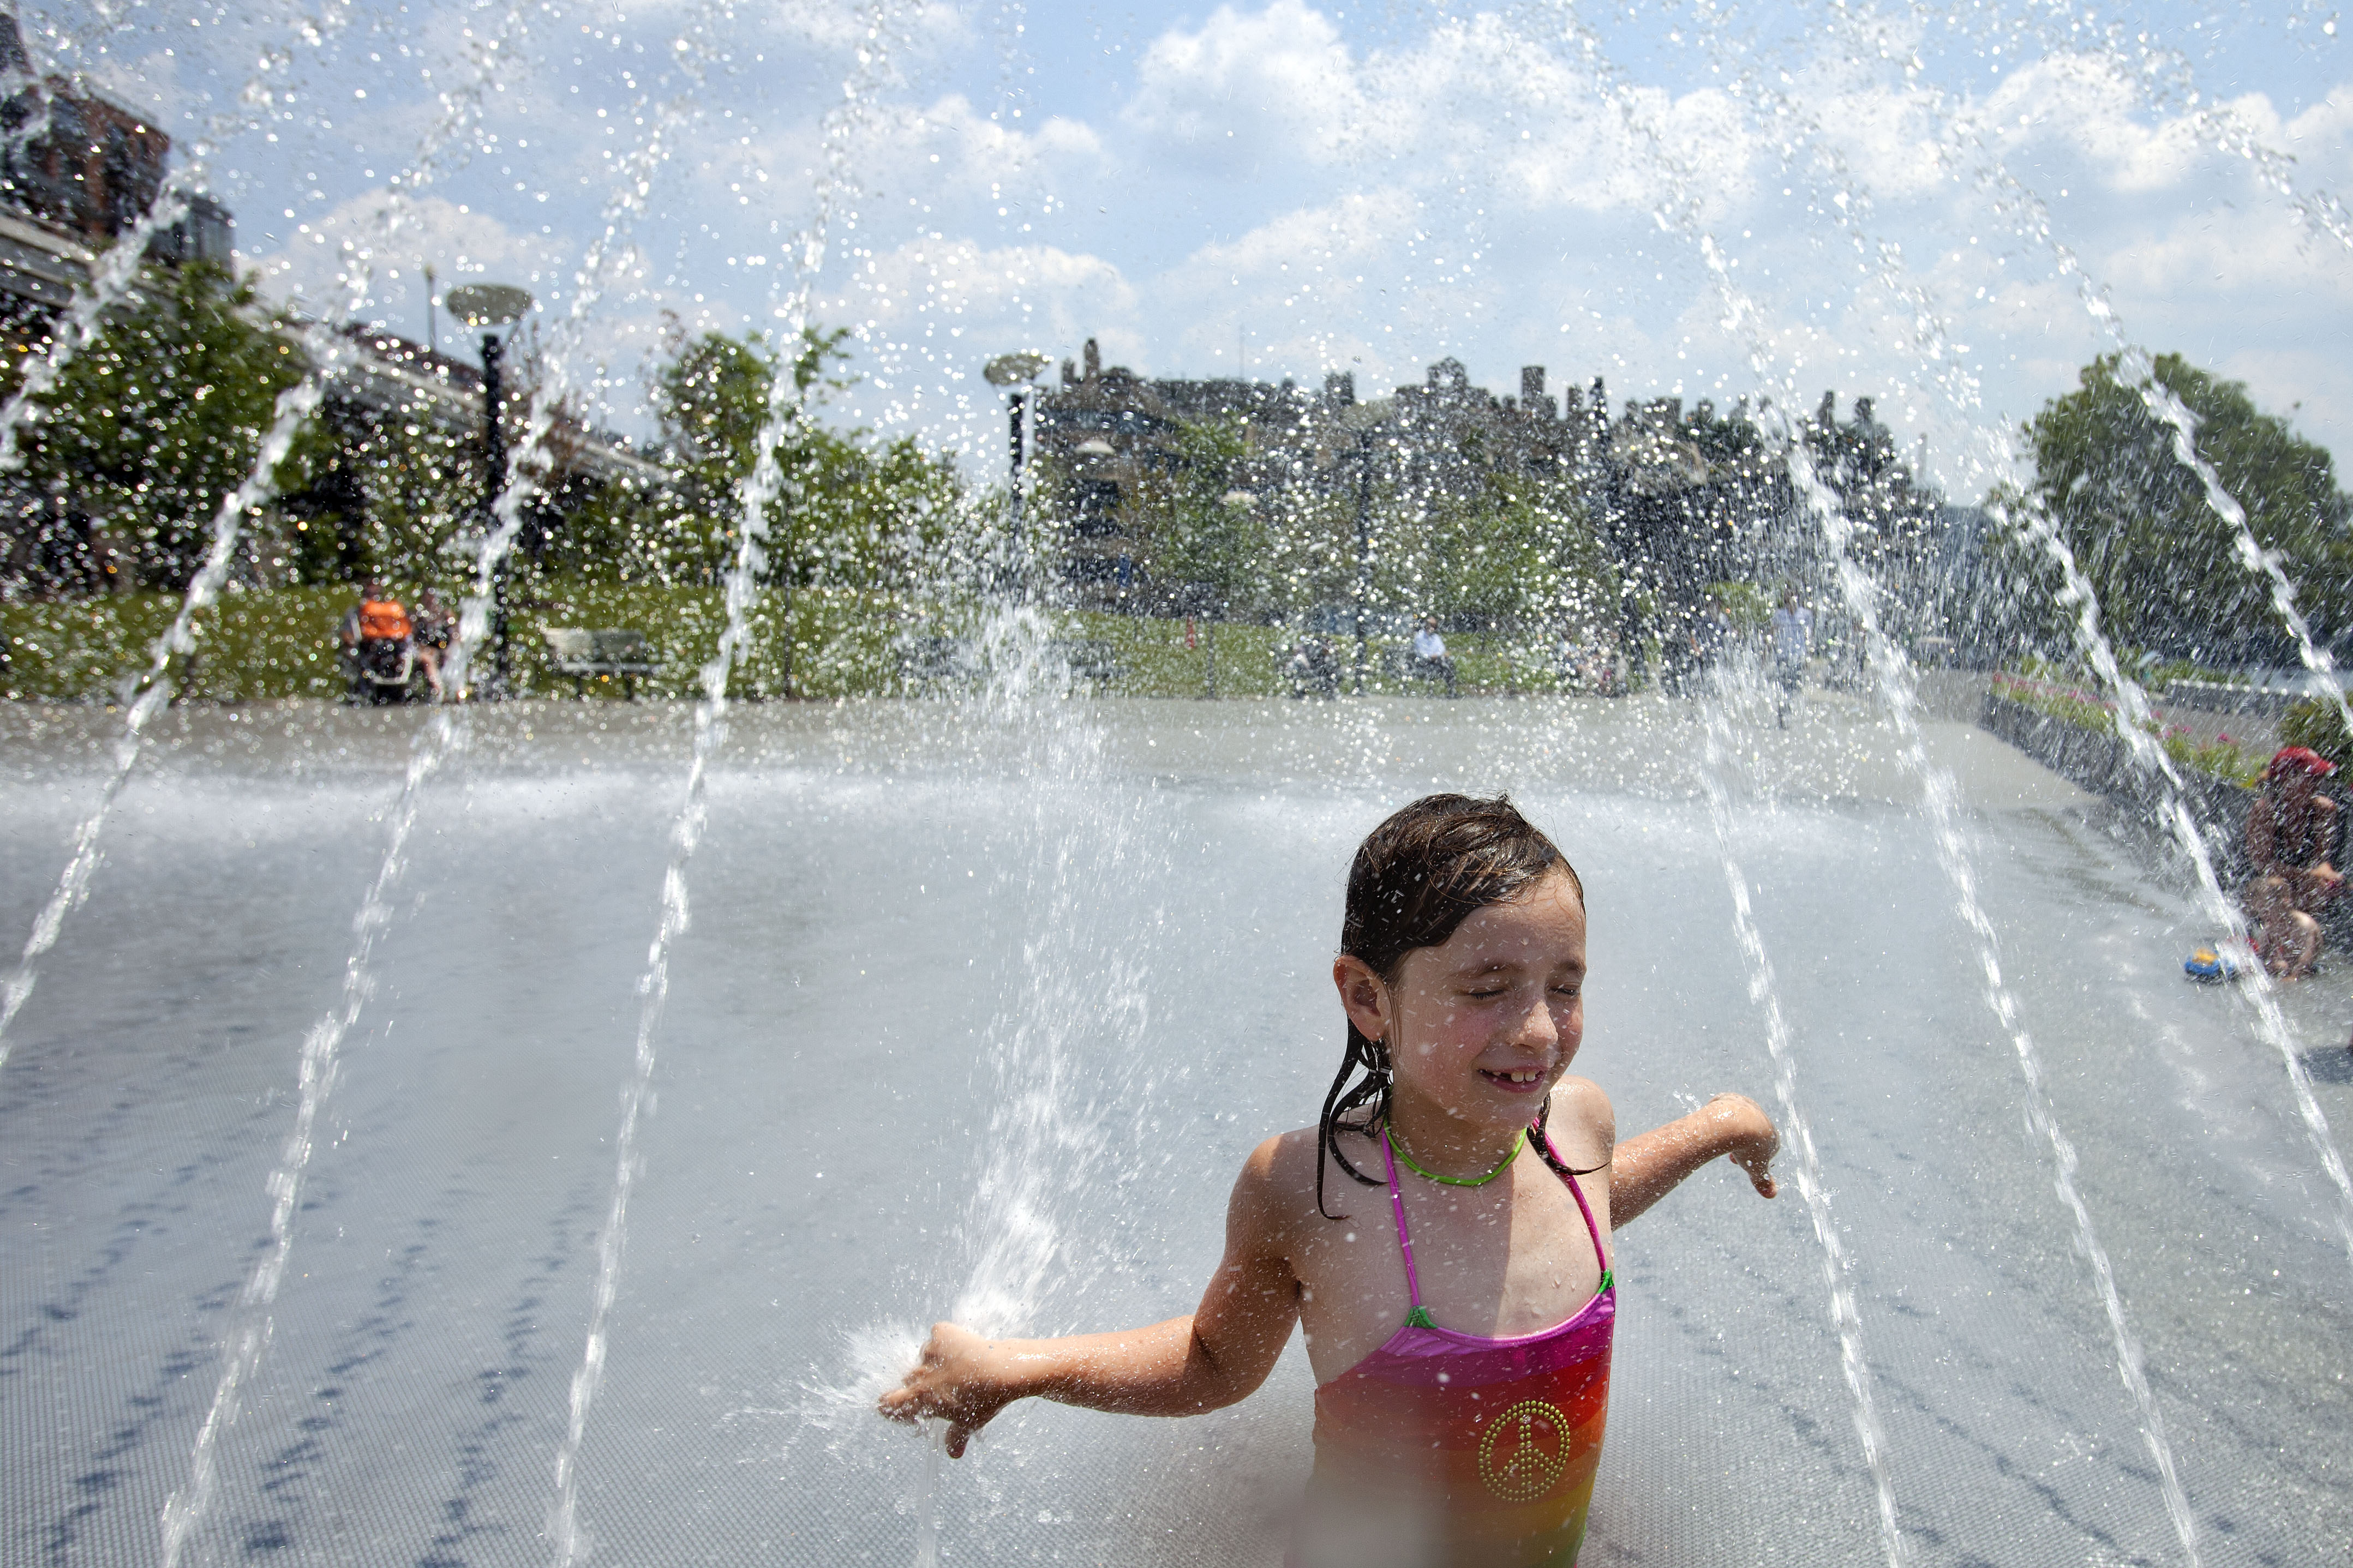 Heat advisory issued for DC area as heat indexes could top 100